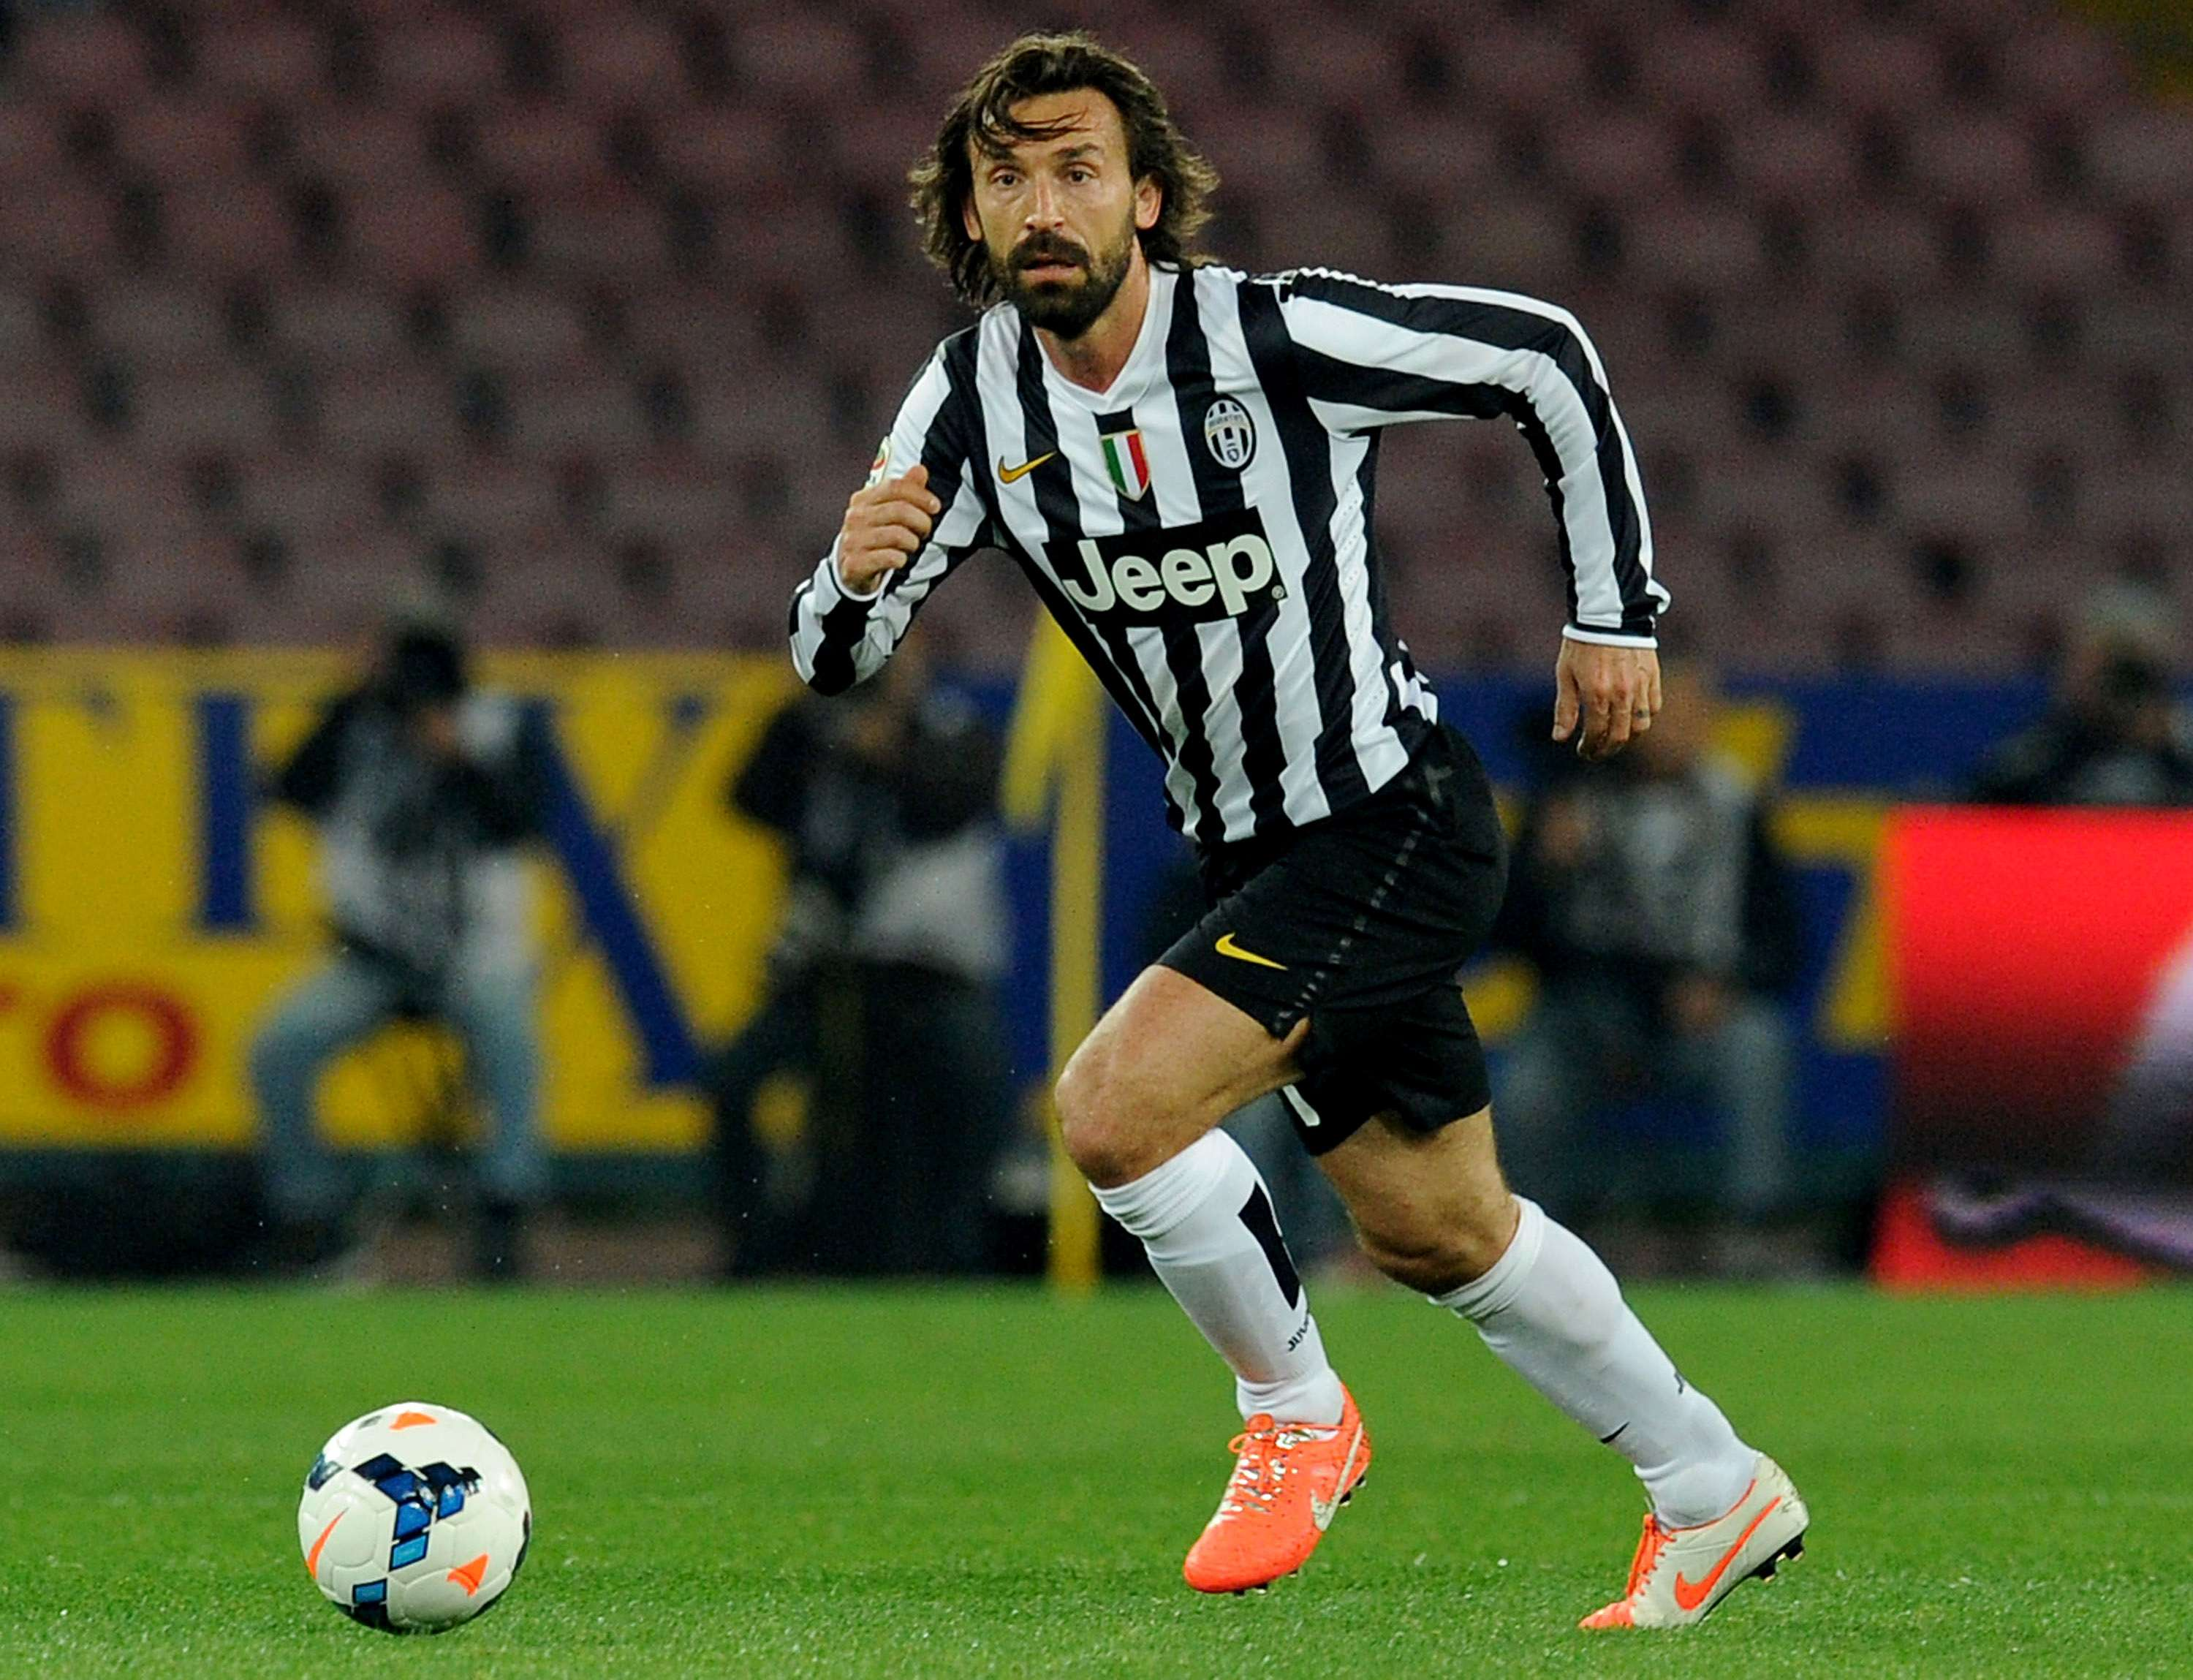 Pep Guardiola attempted to sign Andrea Pirlo at Barcelona